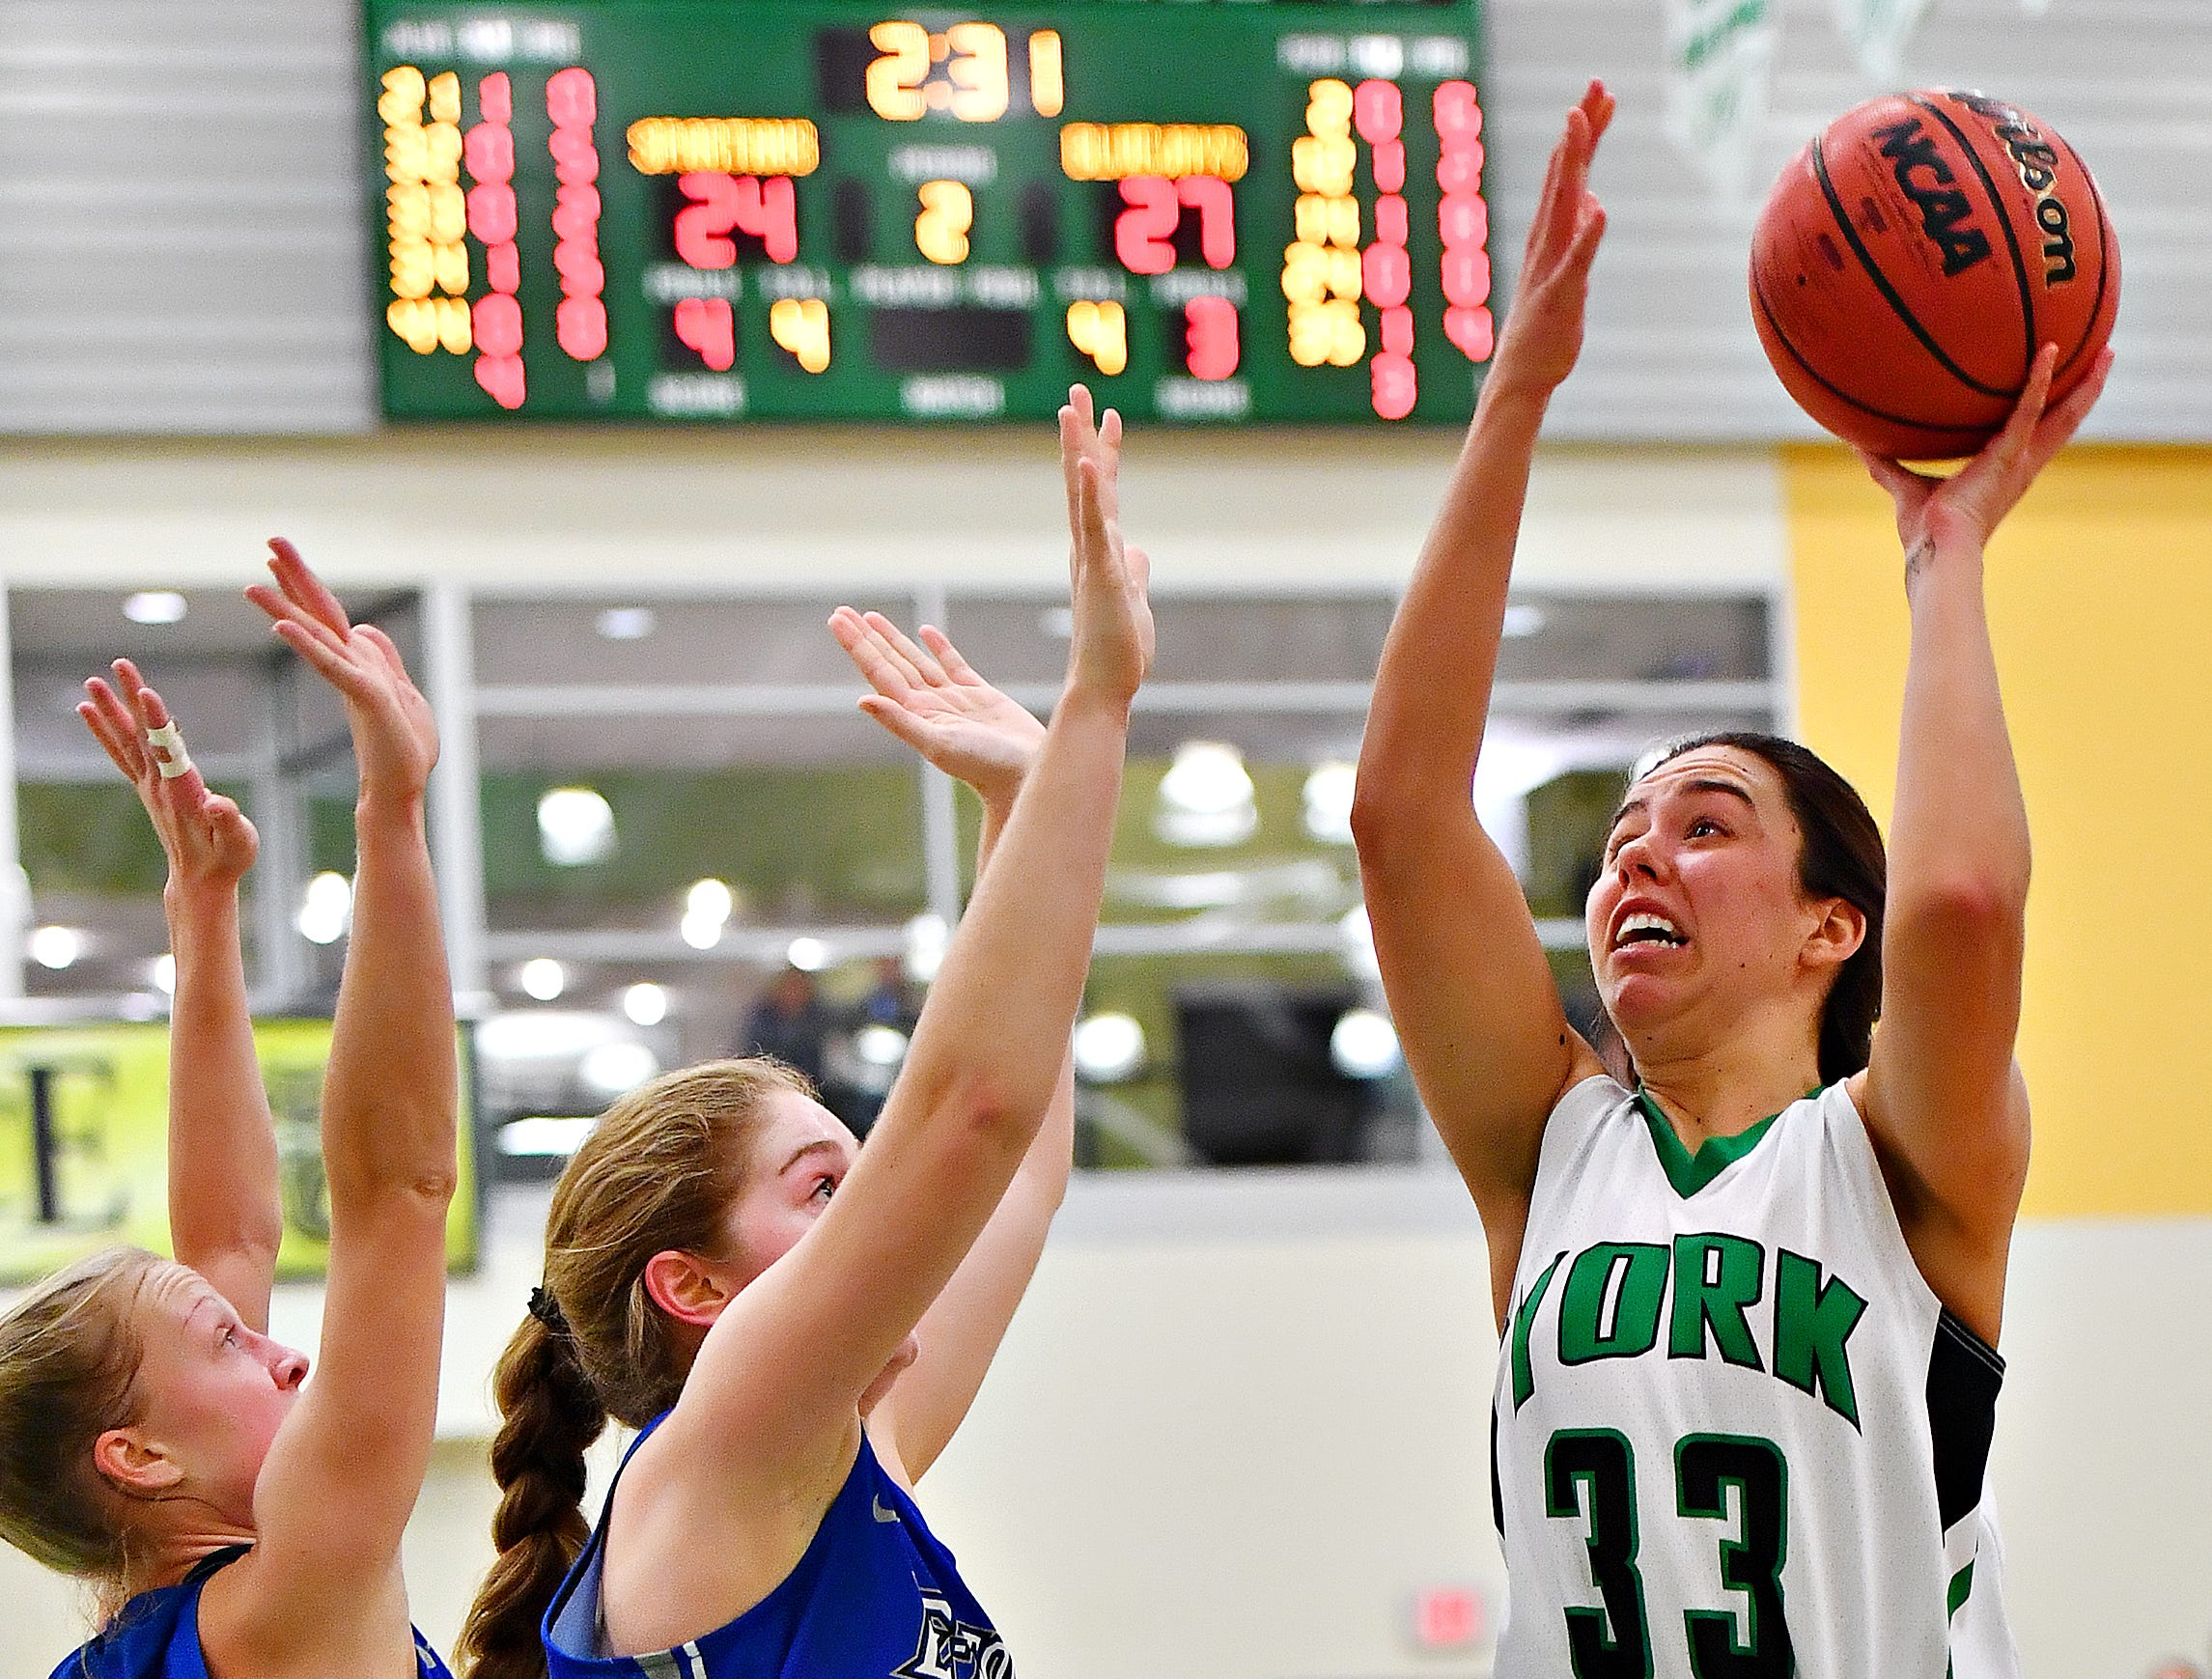 York College's Meghan Carlson, right, aims for the net while Elizabethtown's Lydia Lawson, left, and Emma Powell defend during women's basketball action at Grumbacher Sport and Fitness Center in Spring Garden Township, Wednesday, Nov. 28, 2018. Dawn J. Sagert photo